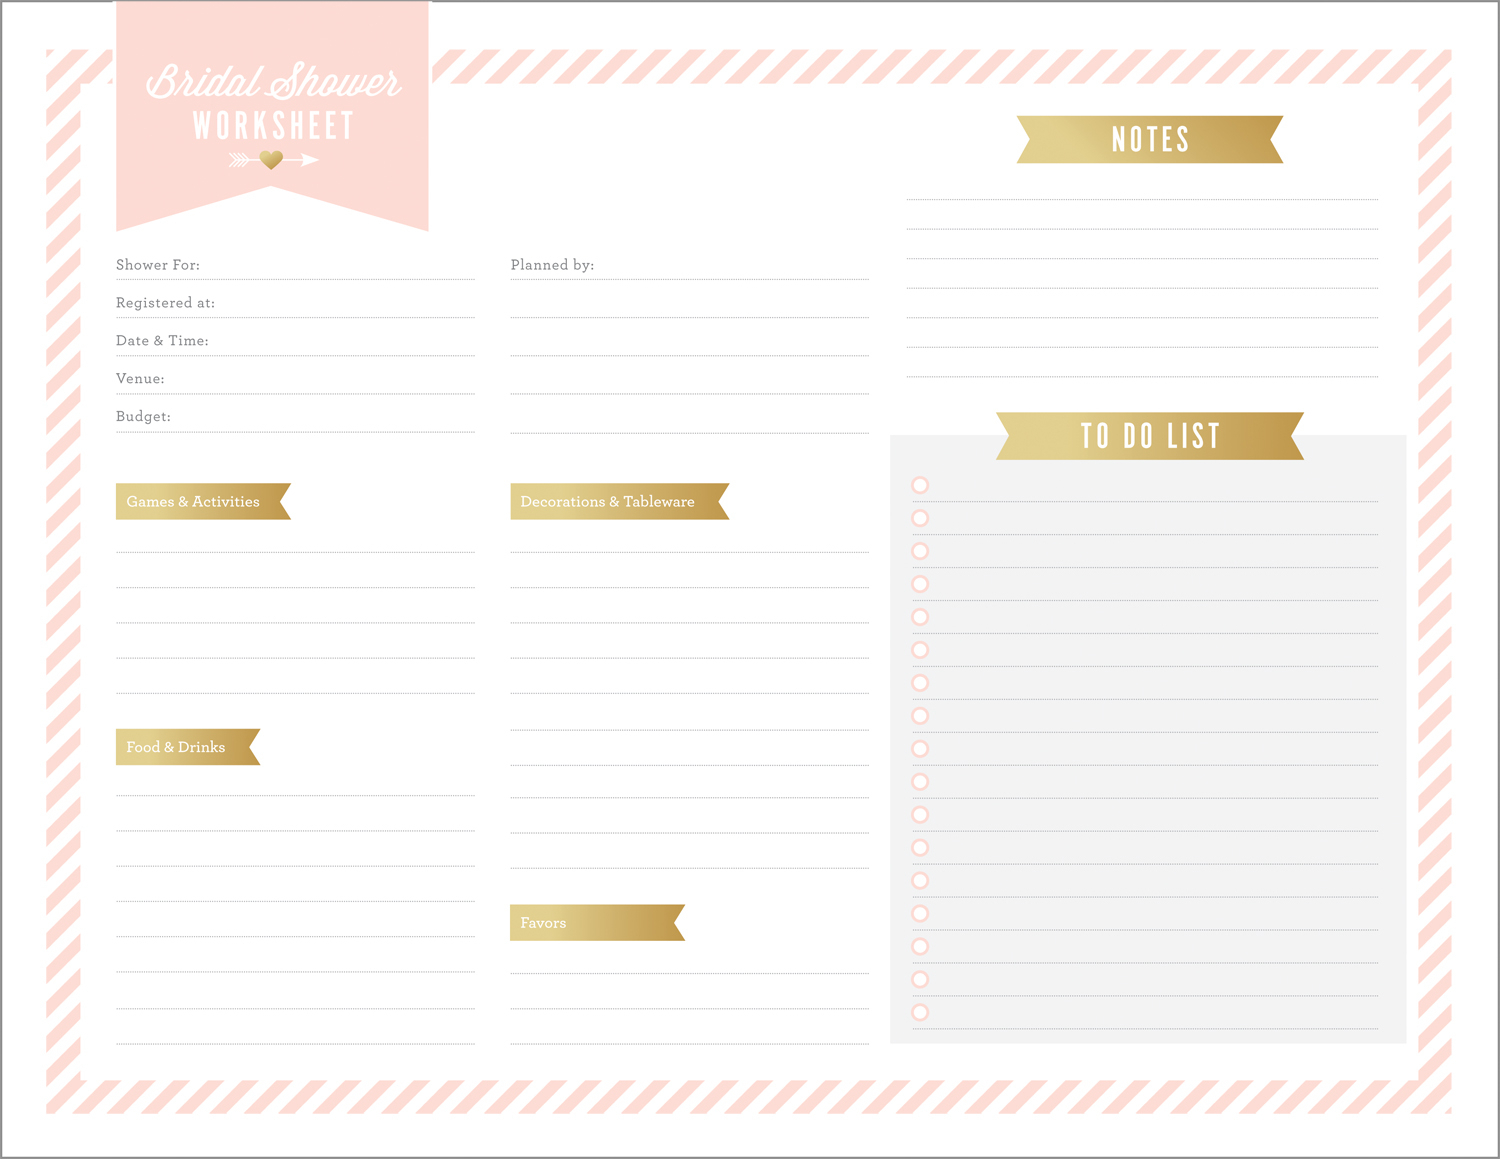 Bridal Shower Planning Spreadsheet Pertaining To Free